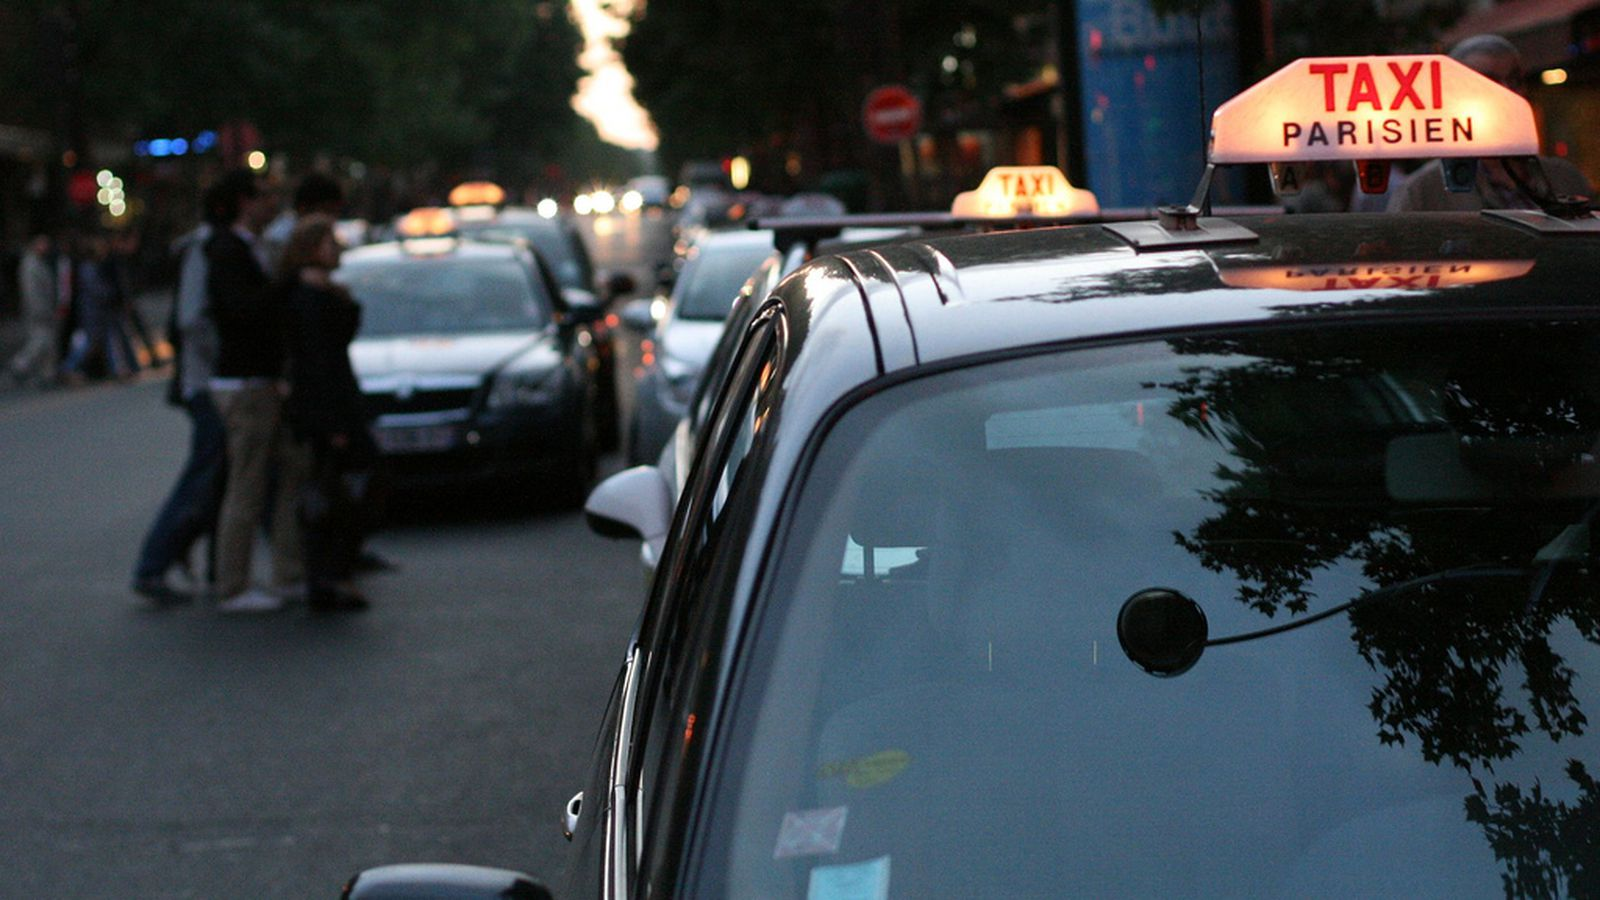 uber car attacked as paris taxi strike turns violent the verge. Black Bedroom Furniture Sets. Home Design Ideas